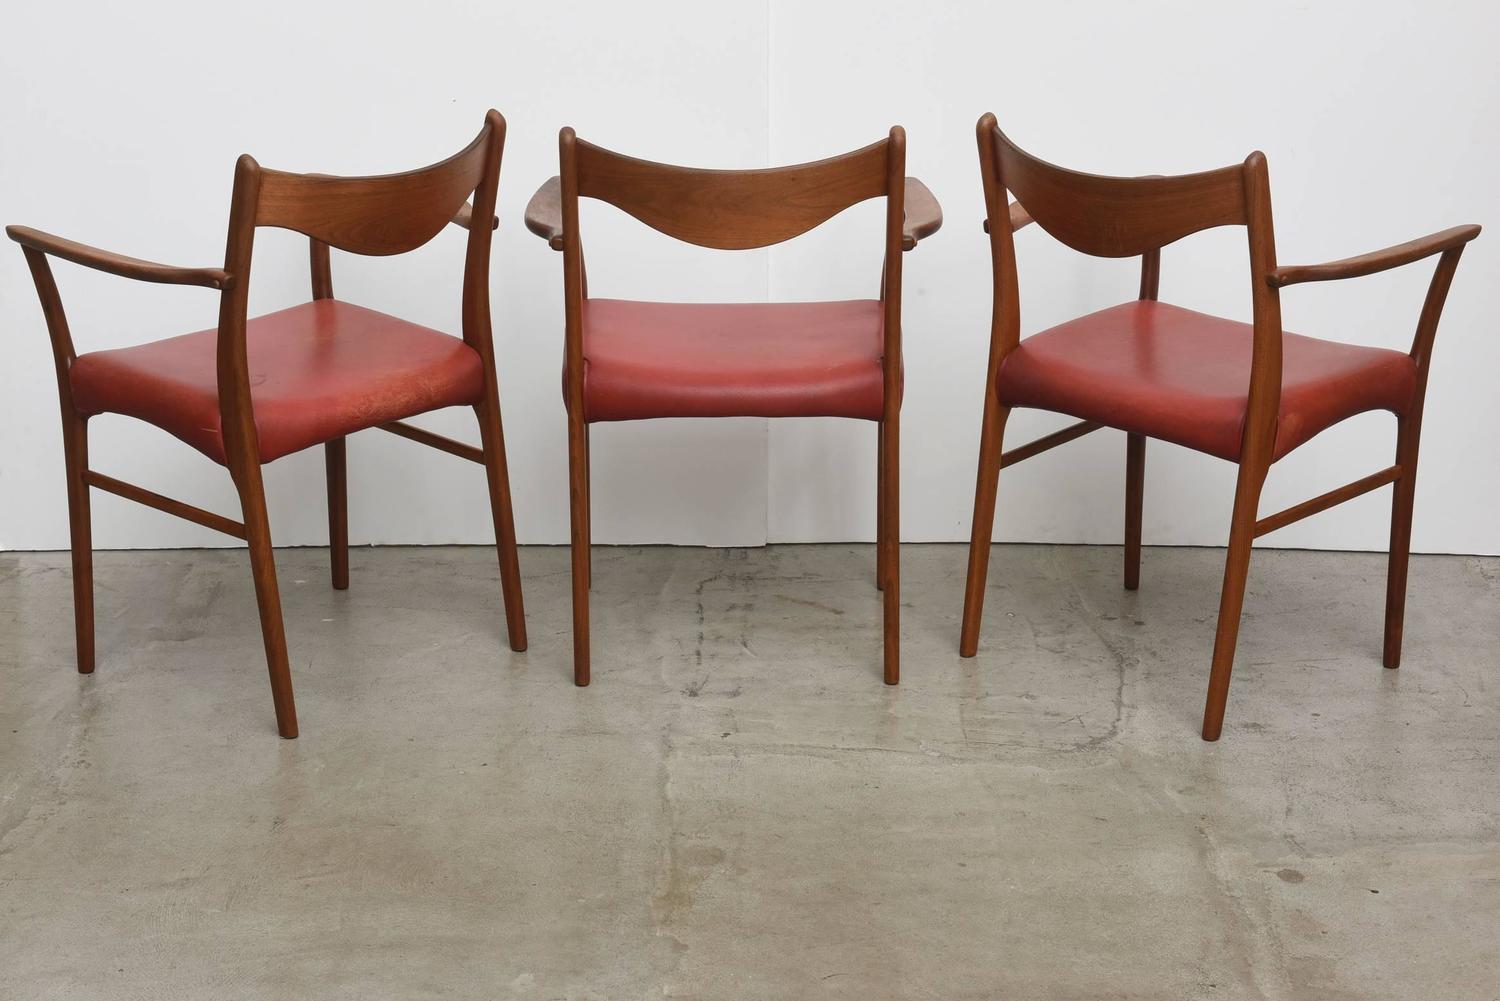 Set of three vintage 1950s danish modern chairs at 1stdibs for Contemporary furniture west palm beach